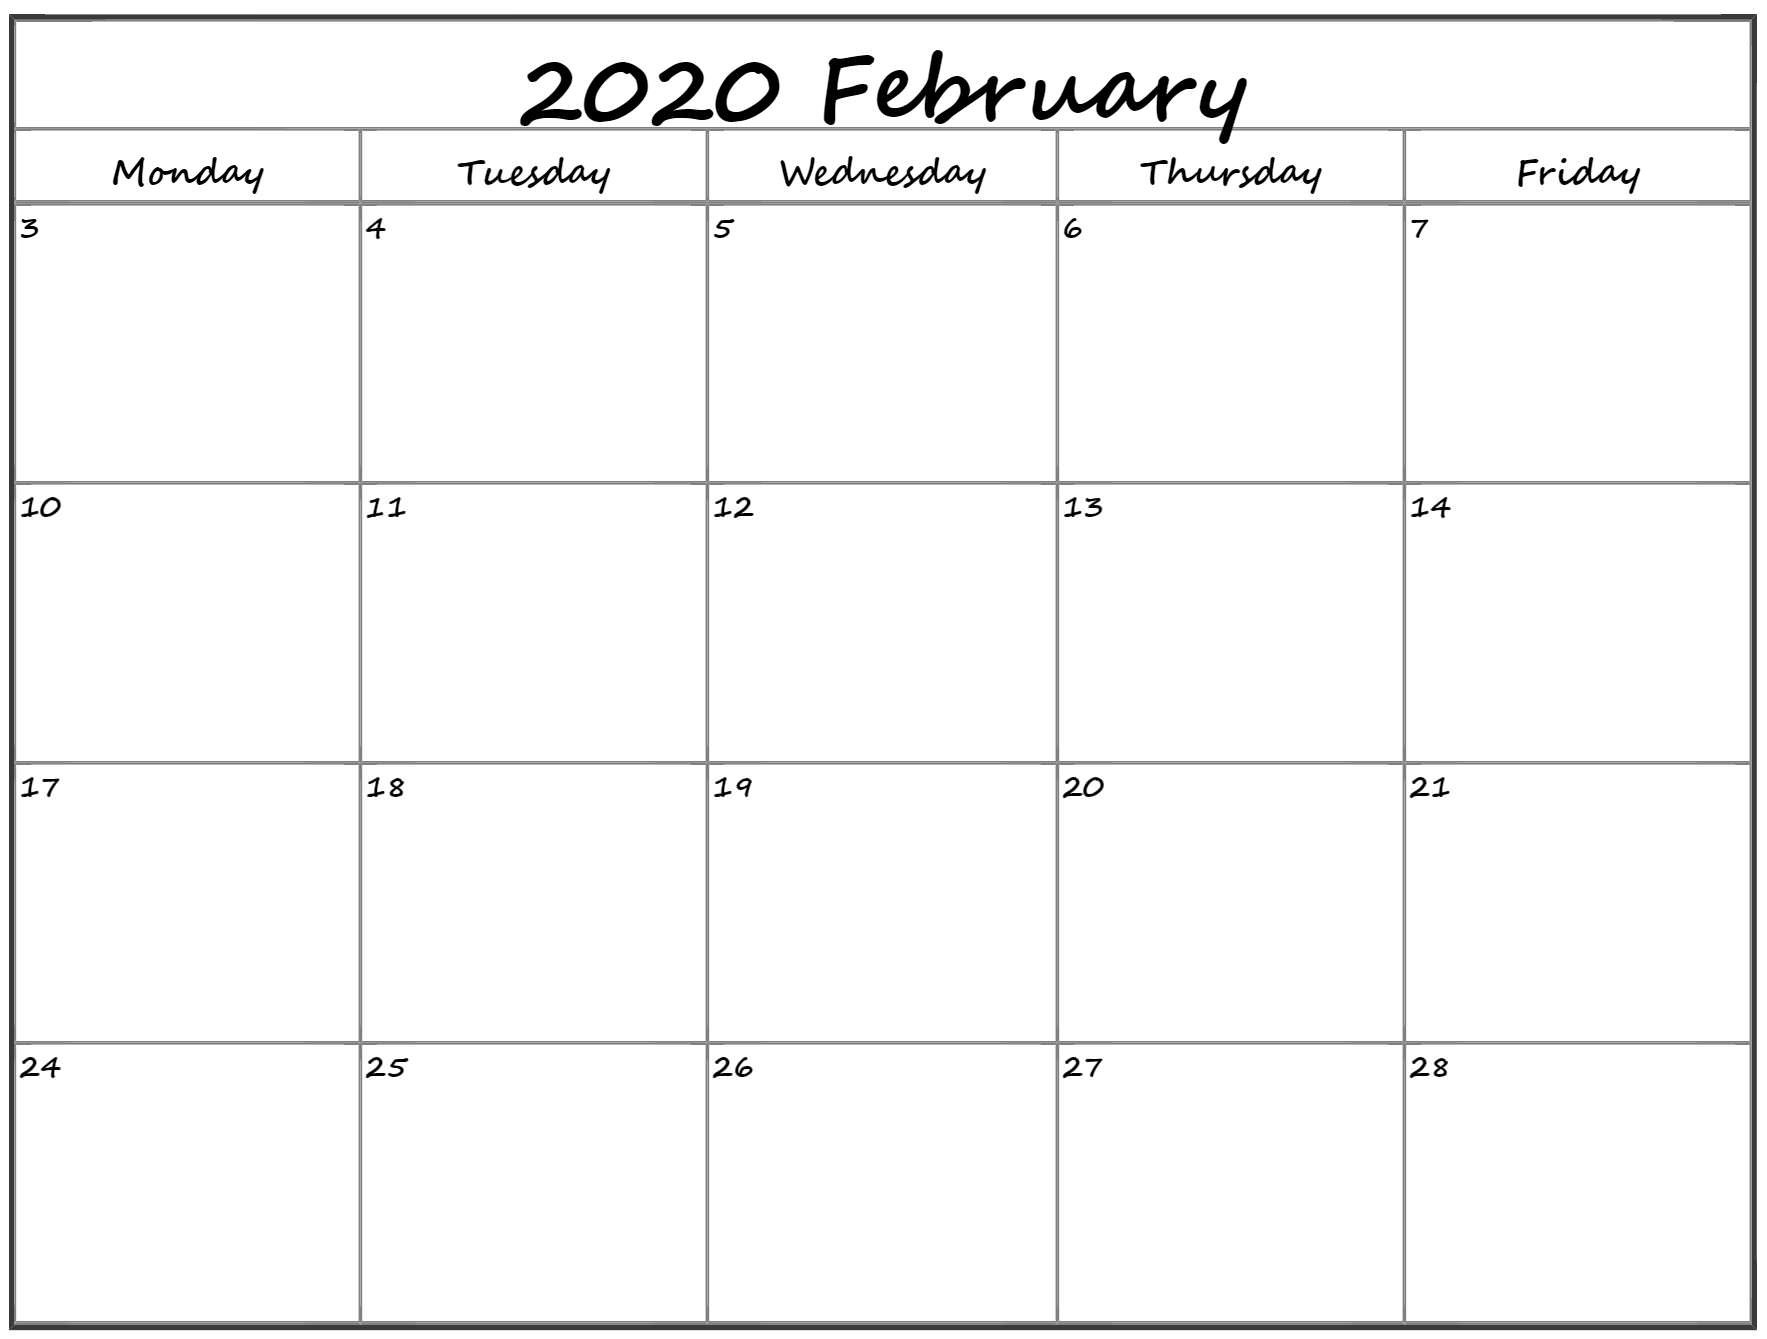 February 2020 Monday Calendar | Monday To Sunday Free Printable Monday To Friday Calendar